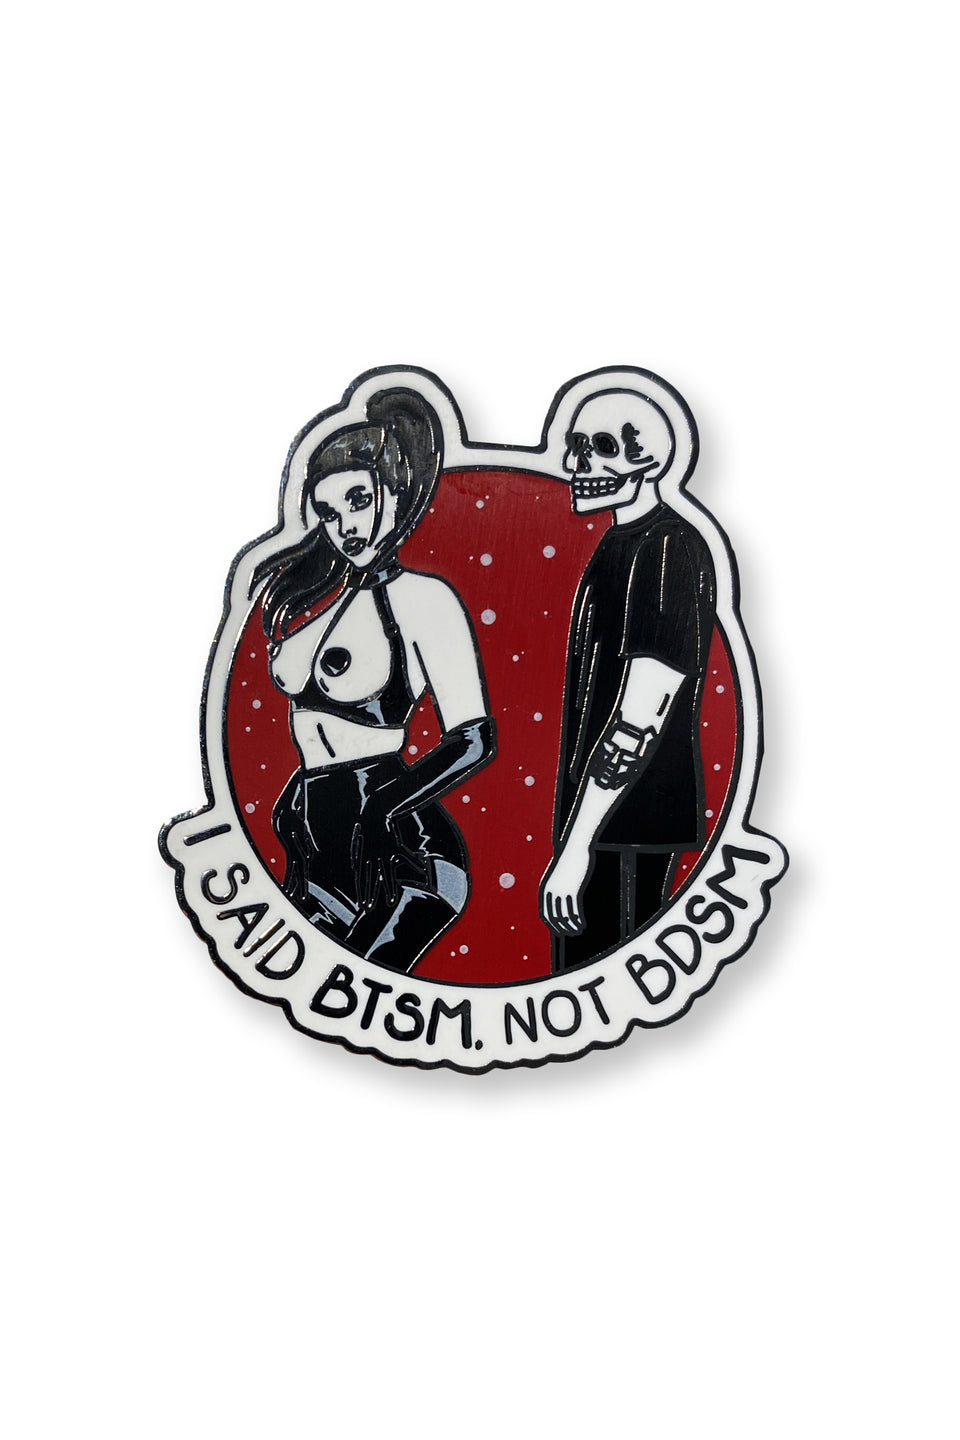 BTSM - not BDSM Lapel Pin